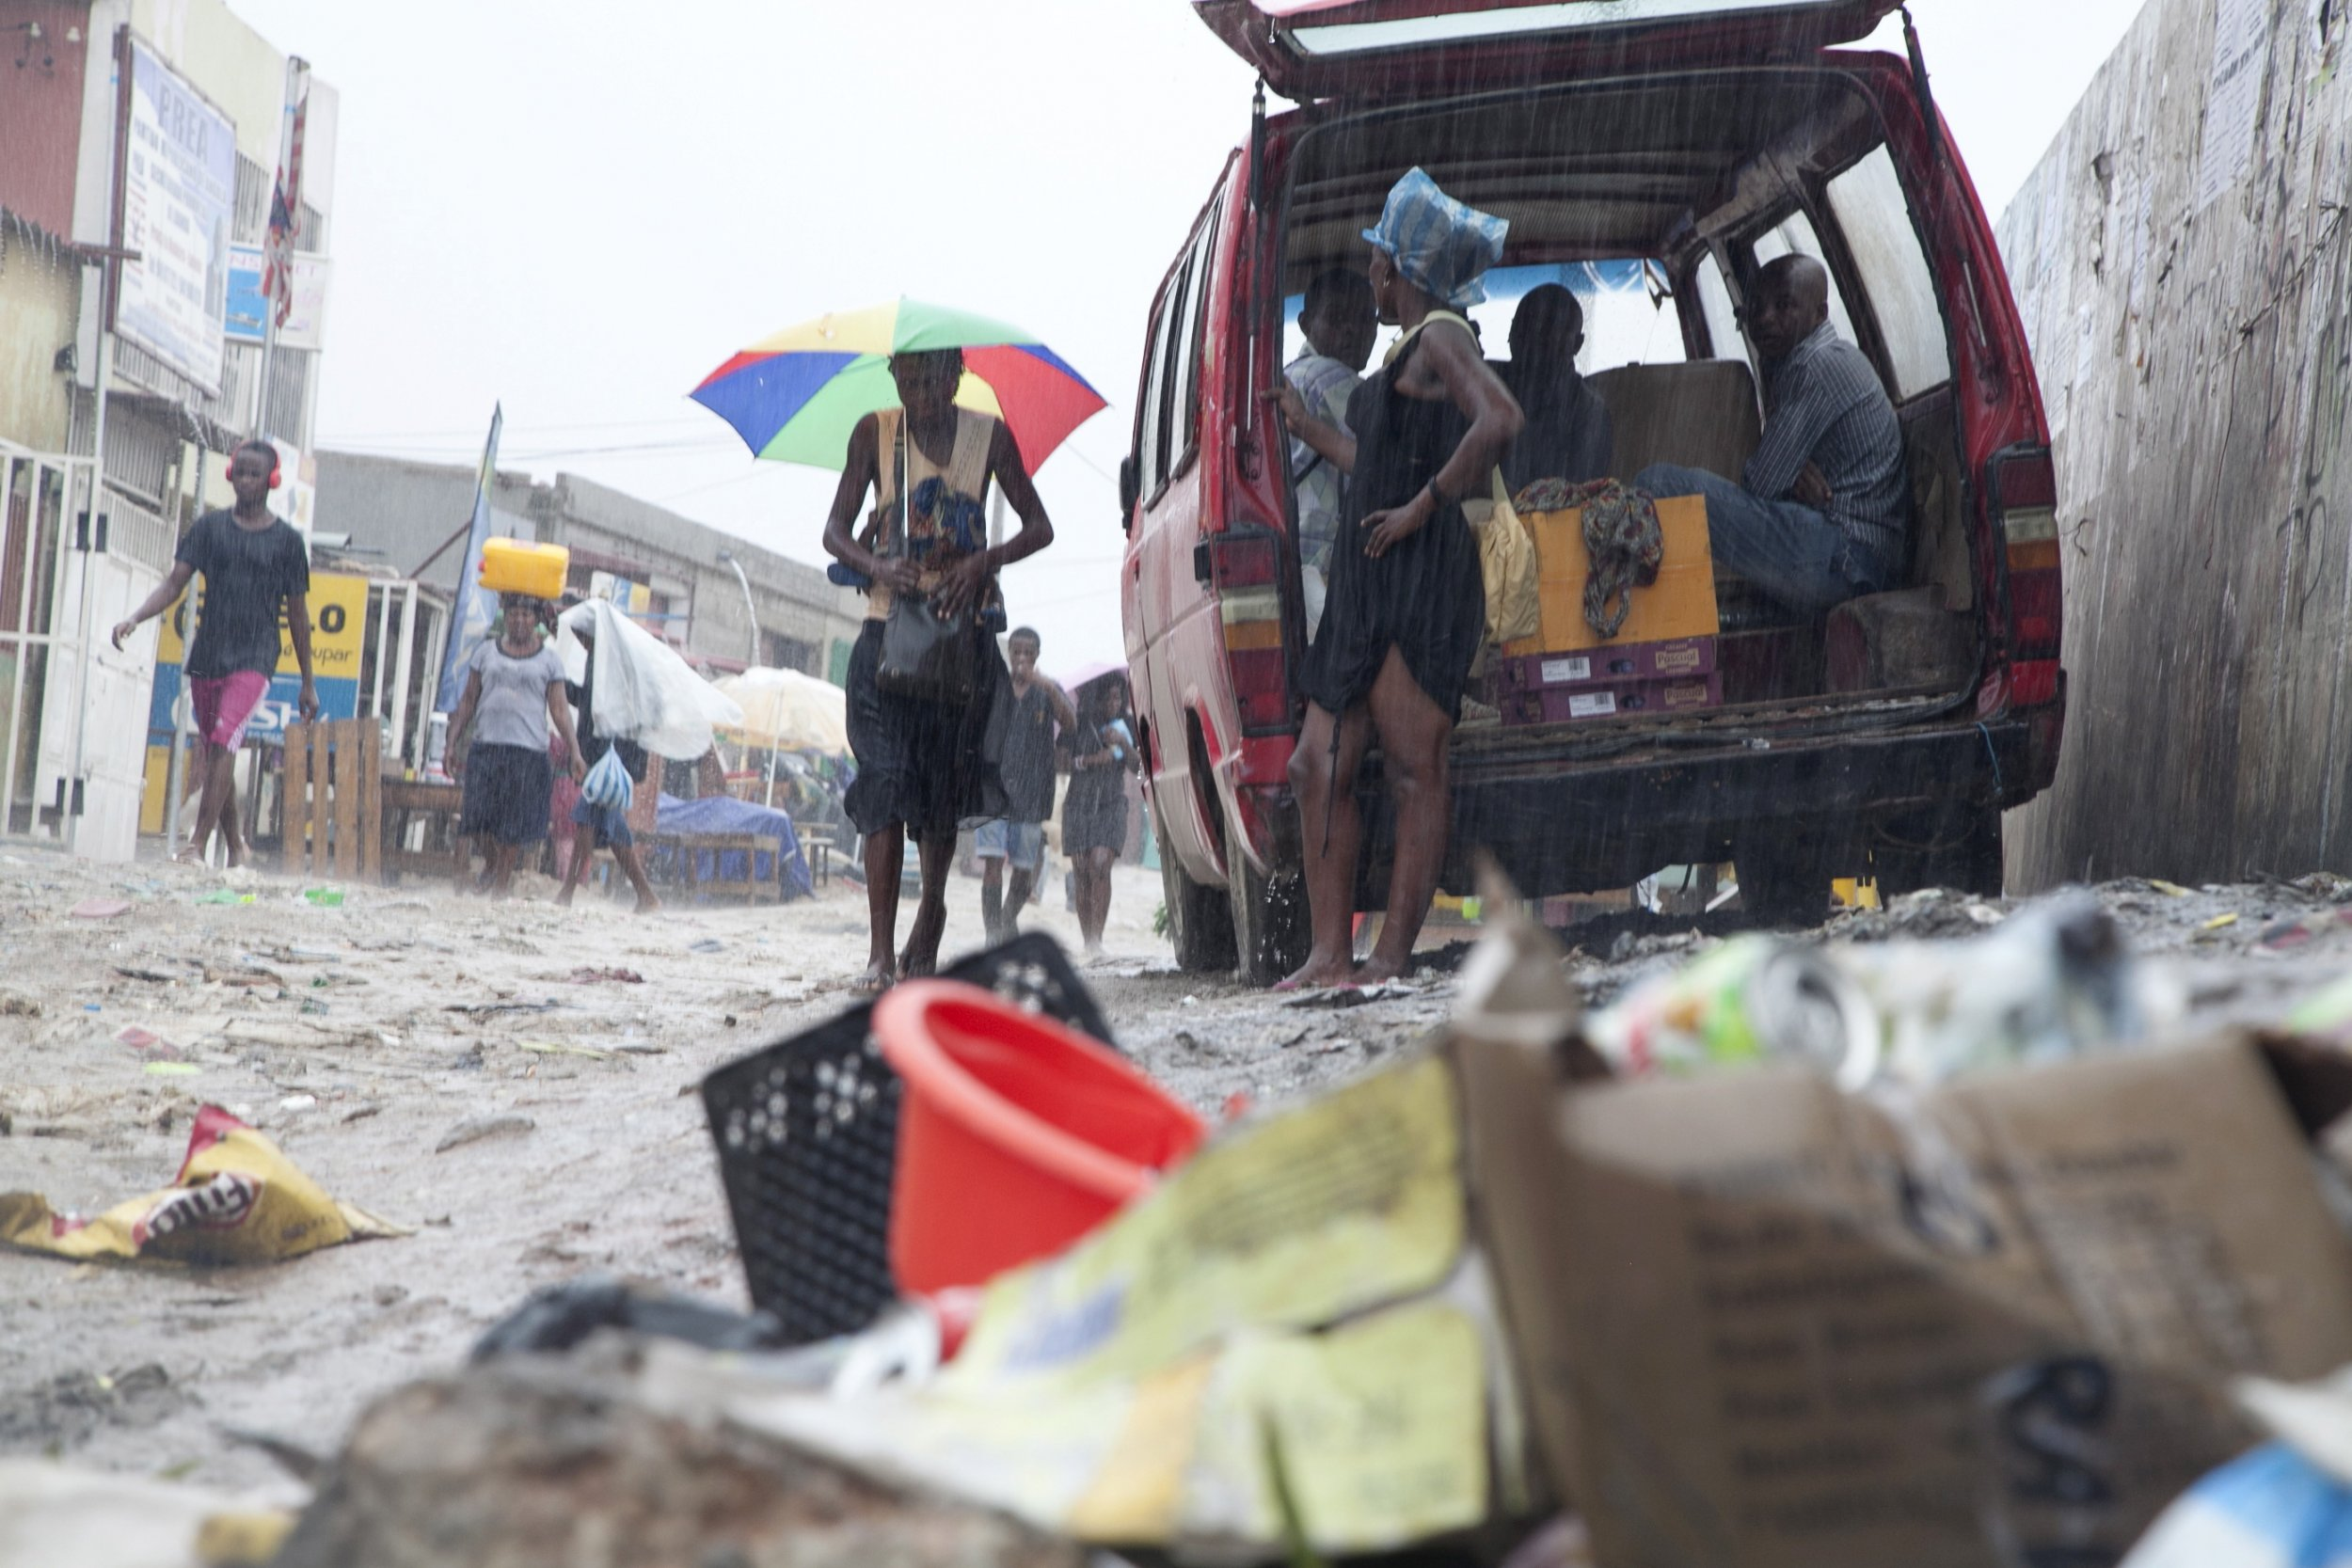 Angola residents walk through a pile of garbage